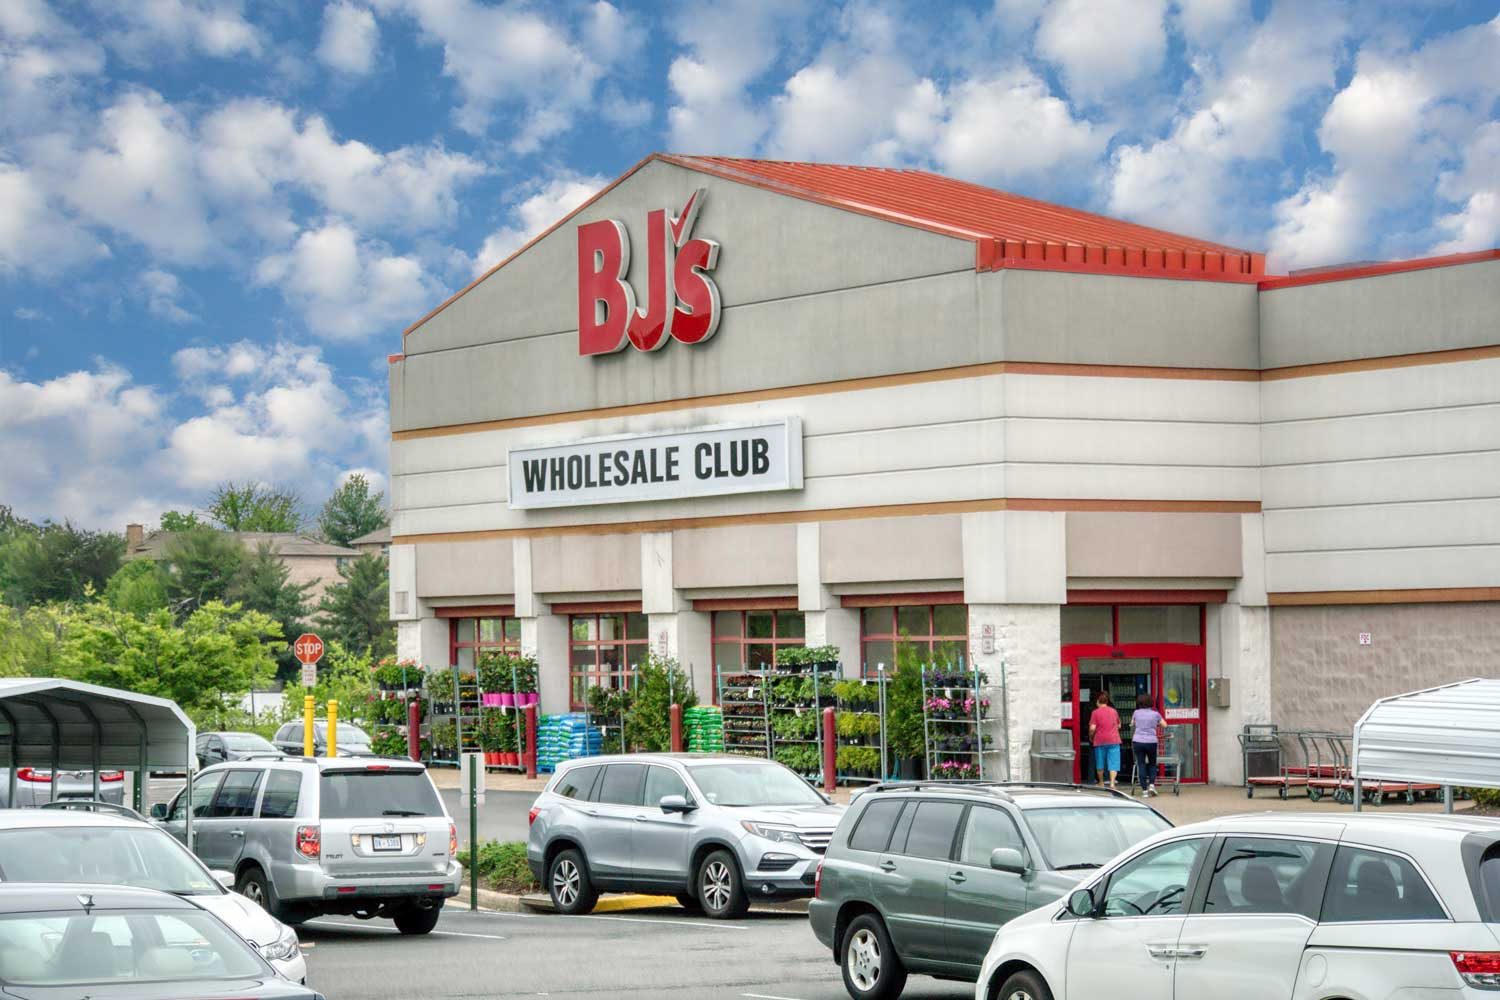 BJ's Wholesale Club is 5 minutes from Woodmont Park Apartments in Alexandria, VA